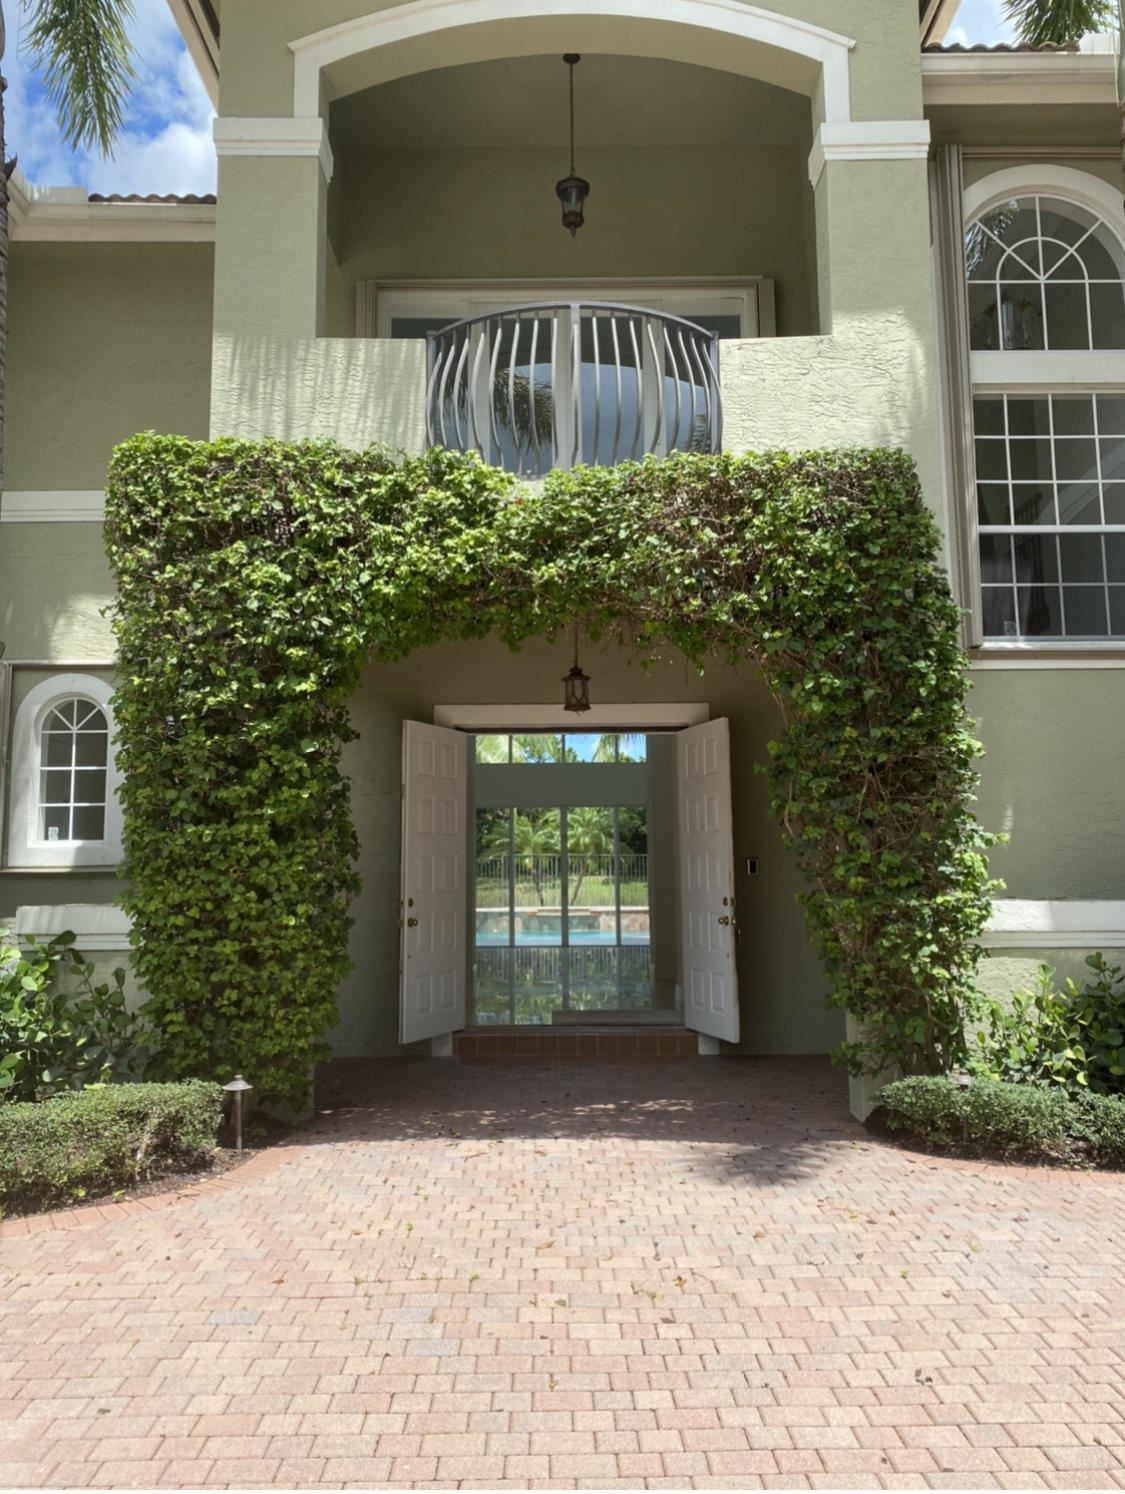 Photo of 9517 New Waterford Cv Cove, Delray Beach, FL 33446 (MLS # RX-10736280)